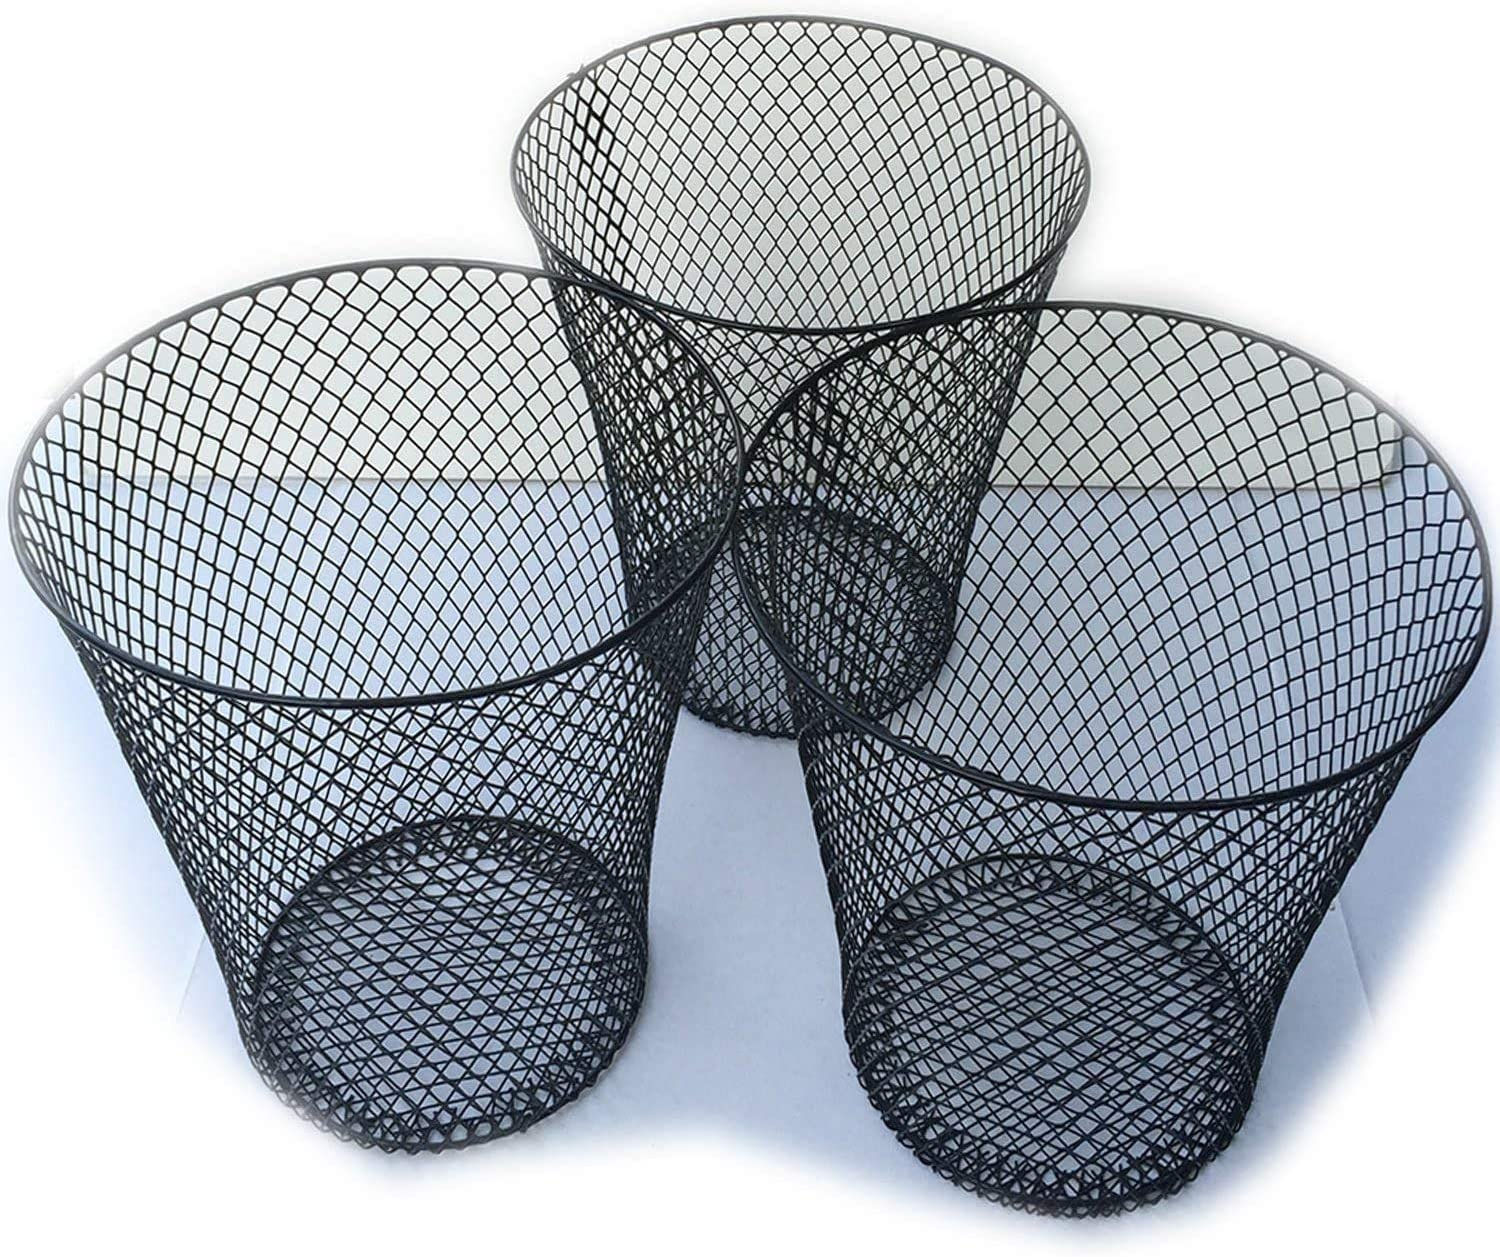 ESSENTIALS Wire Mesh Round Waste Basket | Trash Can Mesh Round Open Top Wastebasket | Recycling Bins Garbage Waste Baskets | Wire Mesh Desk Trash Can | 3-Pack Office Trash Cans (Black)